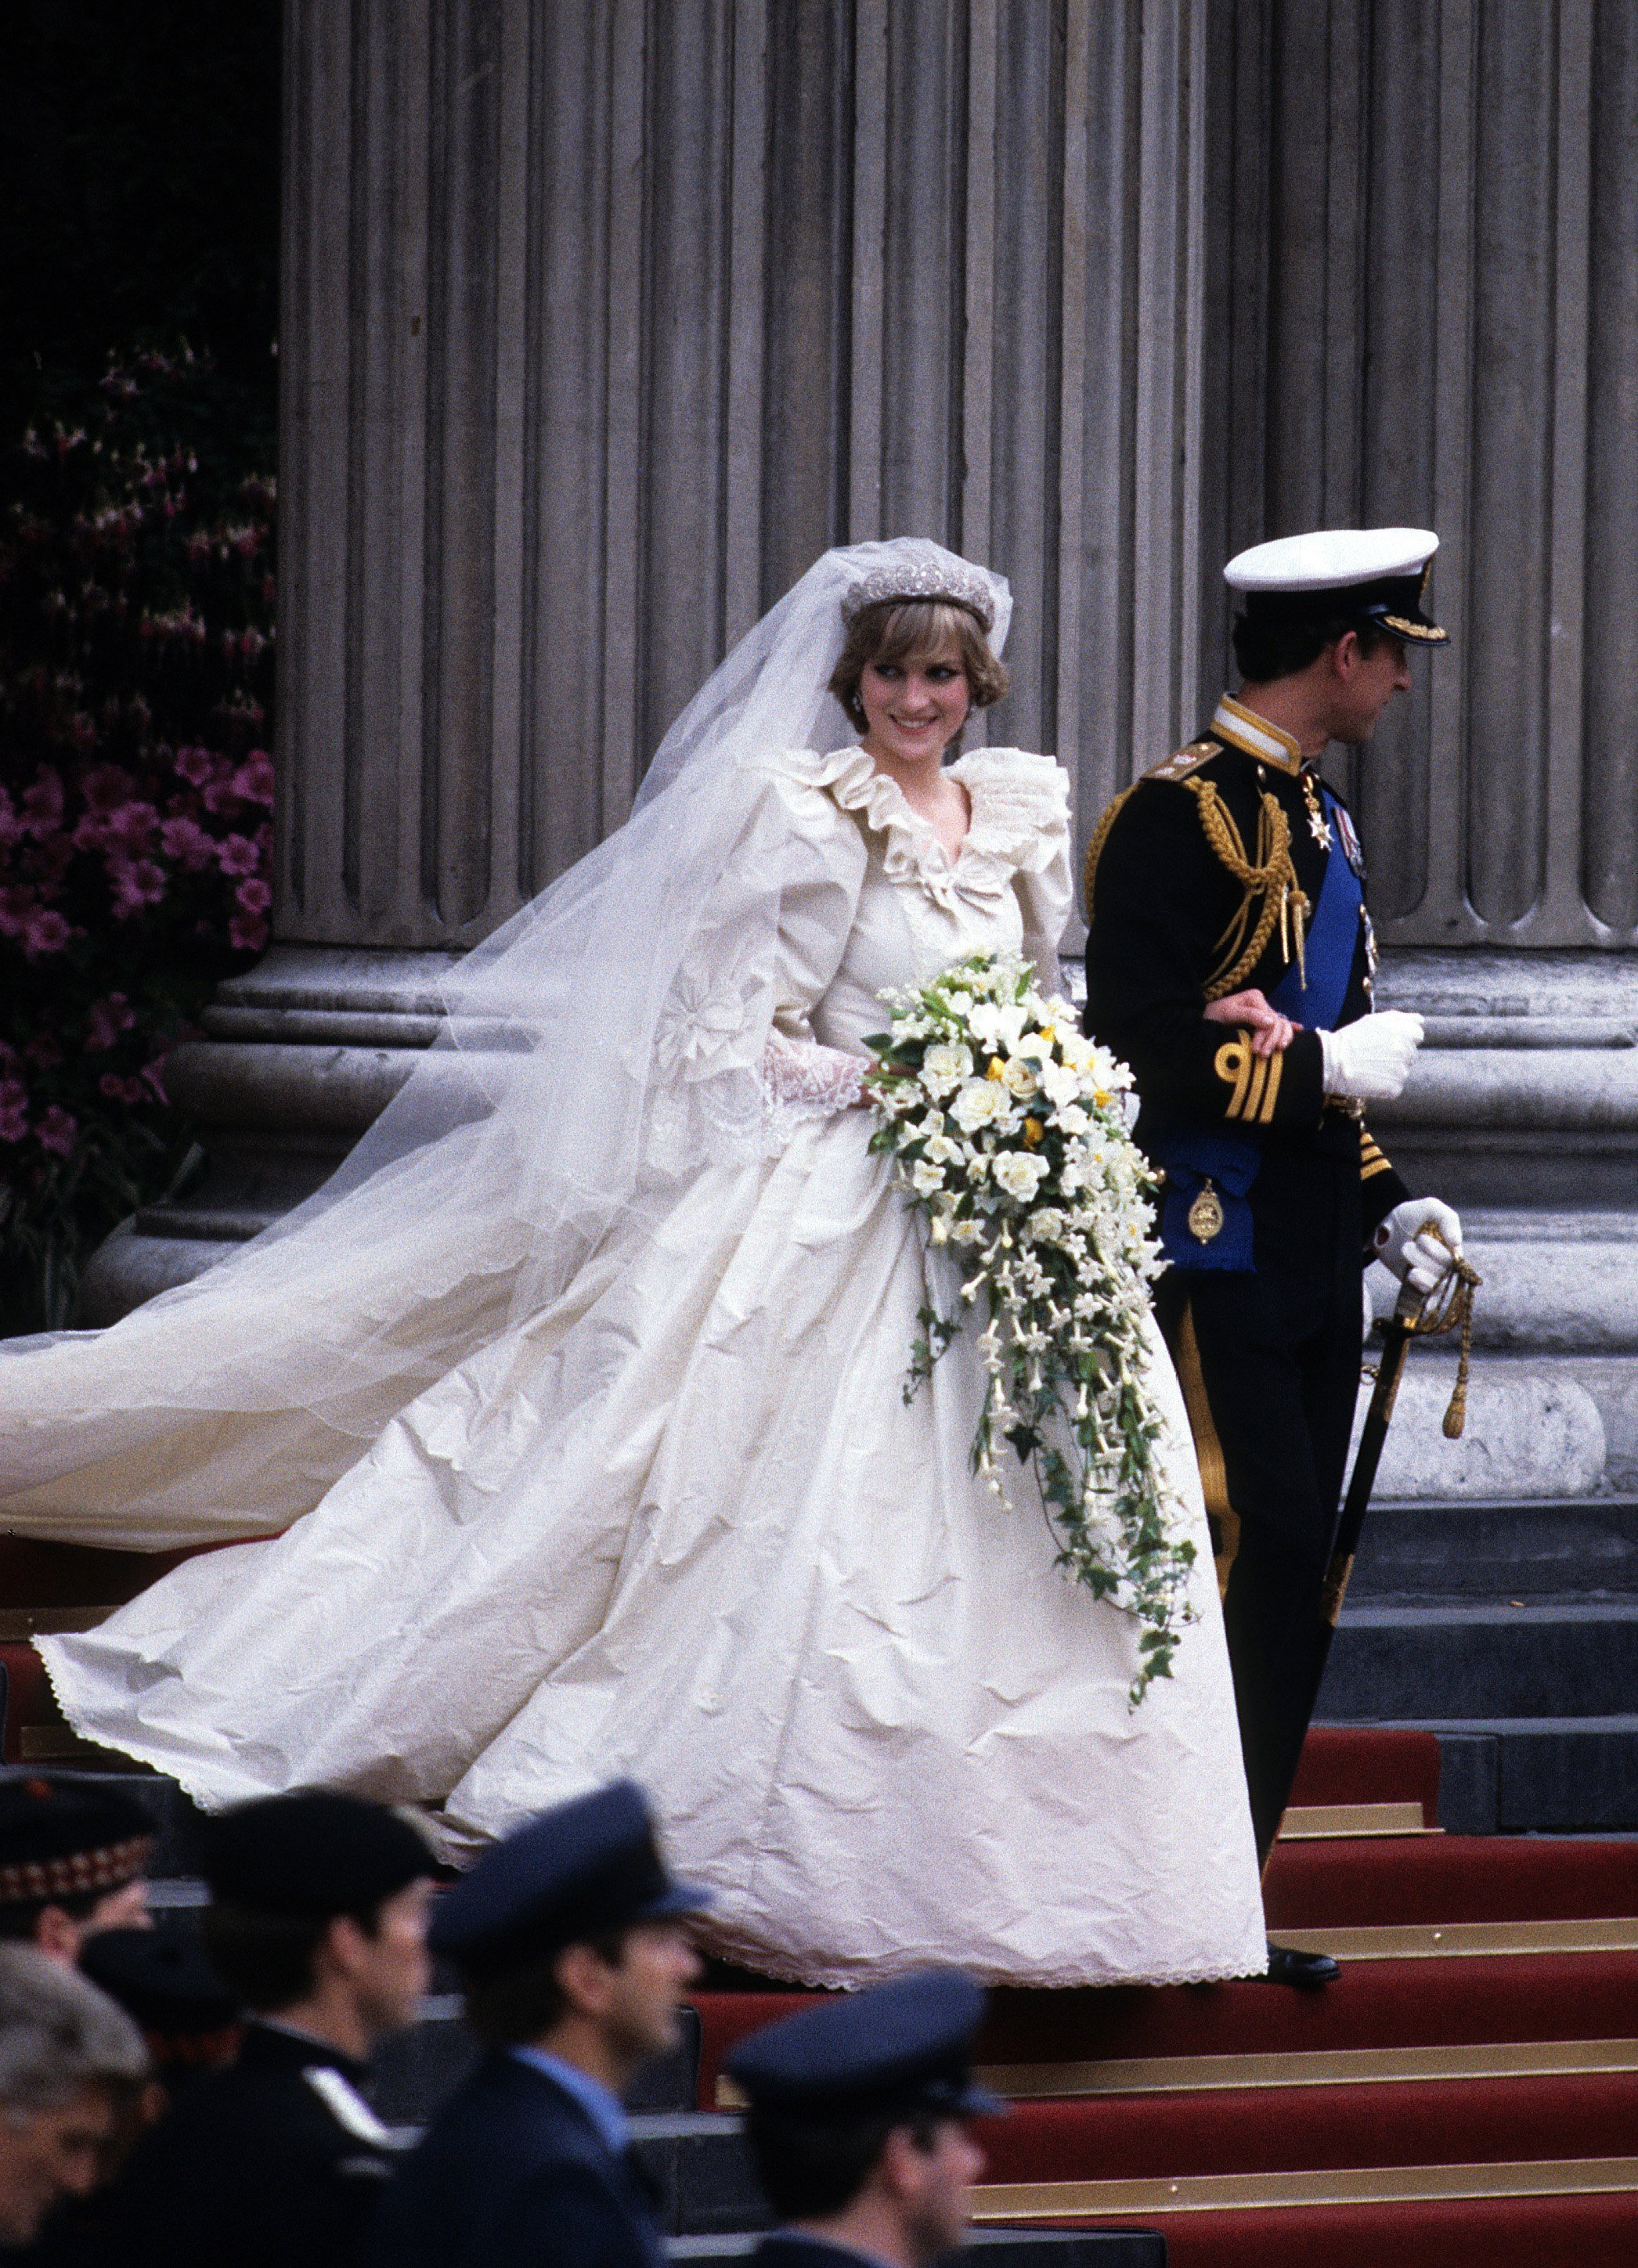 Princess Diana and Prince Charles on their wedding day in St Paul's Cathedral in London, 1991 | Photo: Getty Images